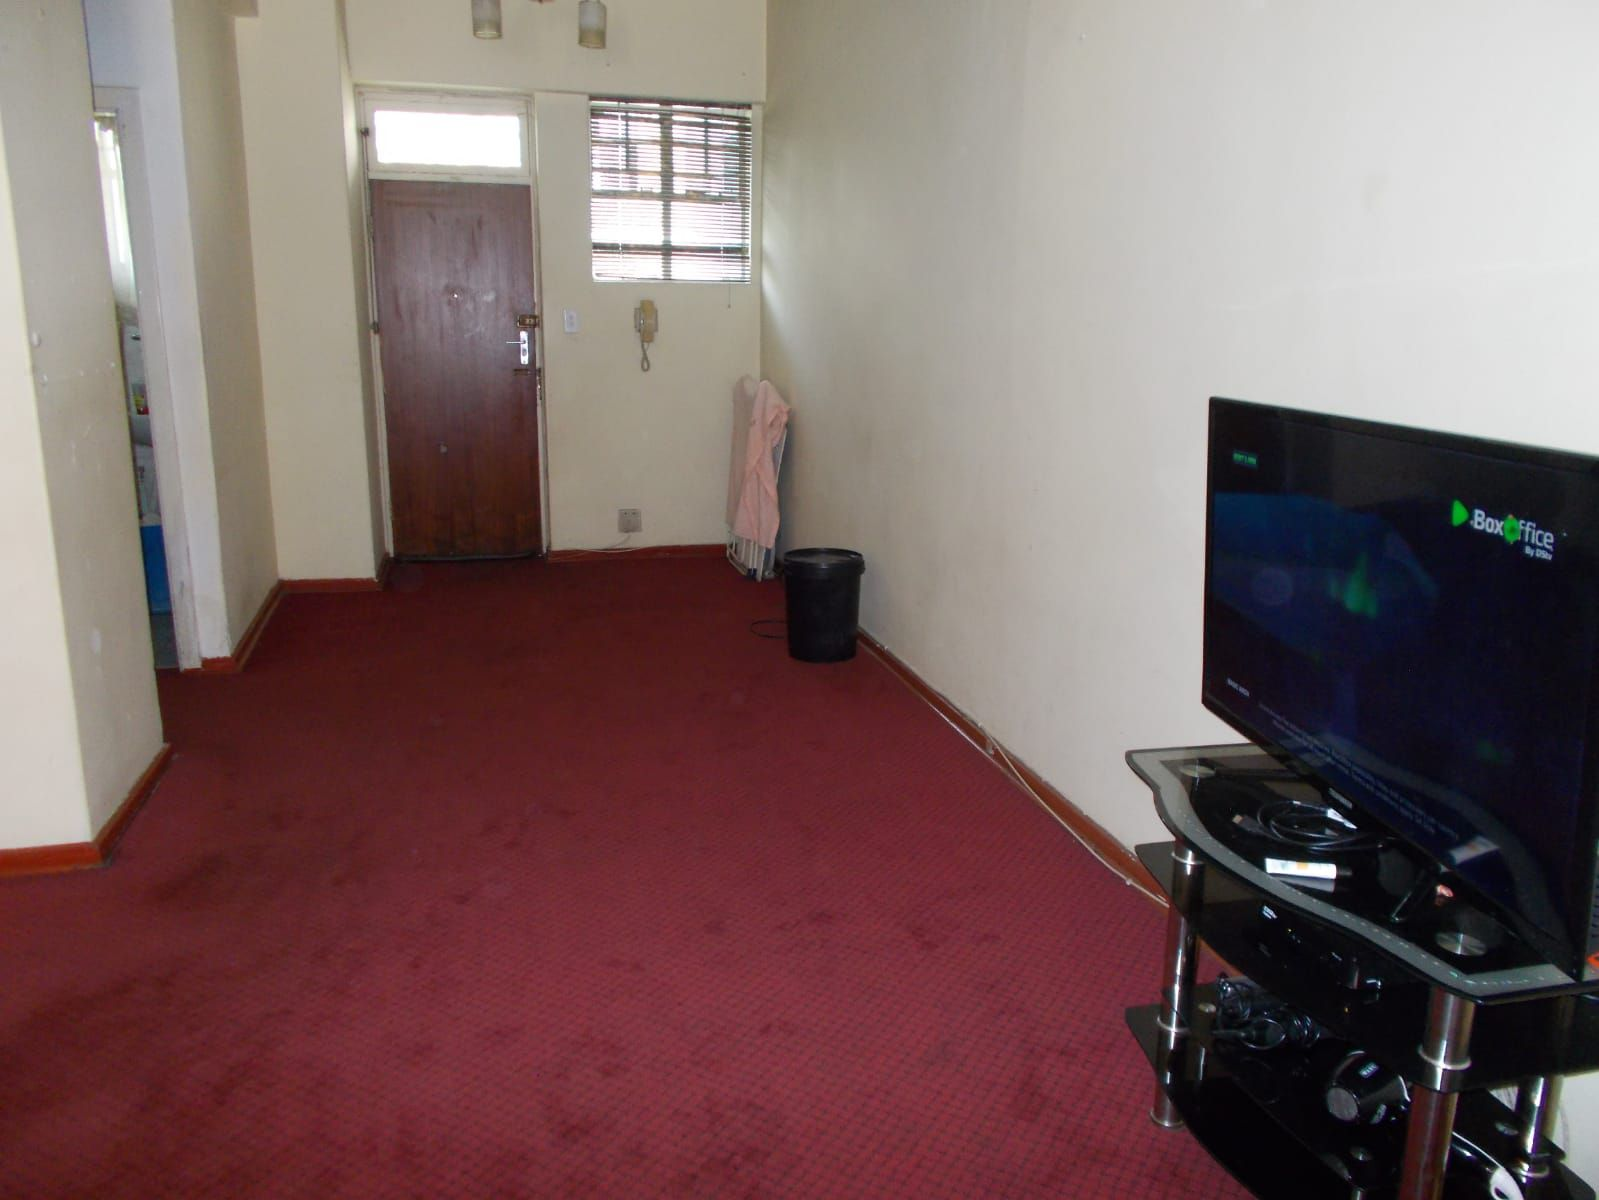 Apartment in Hillbrow - WhatsApp Image 2021-01-12 at 13.03.08 (1).jpeg